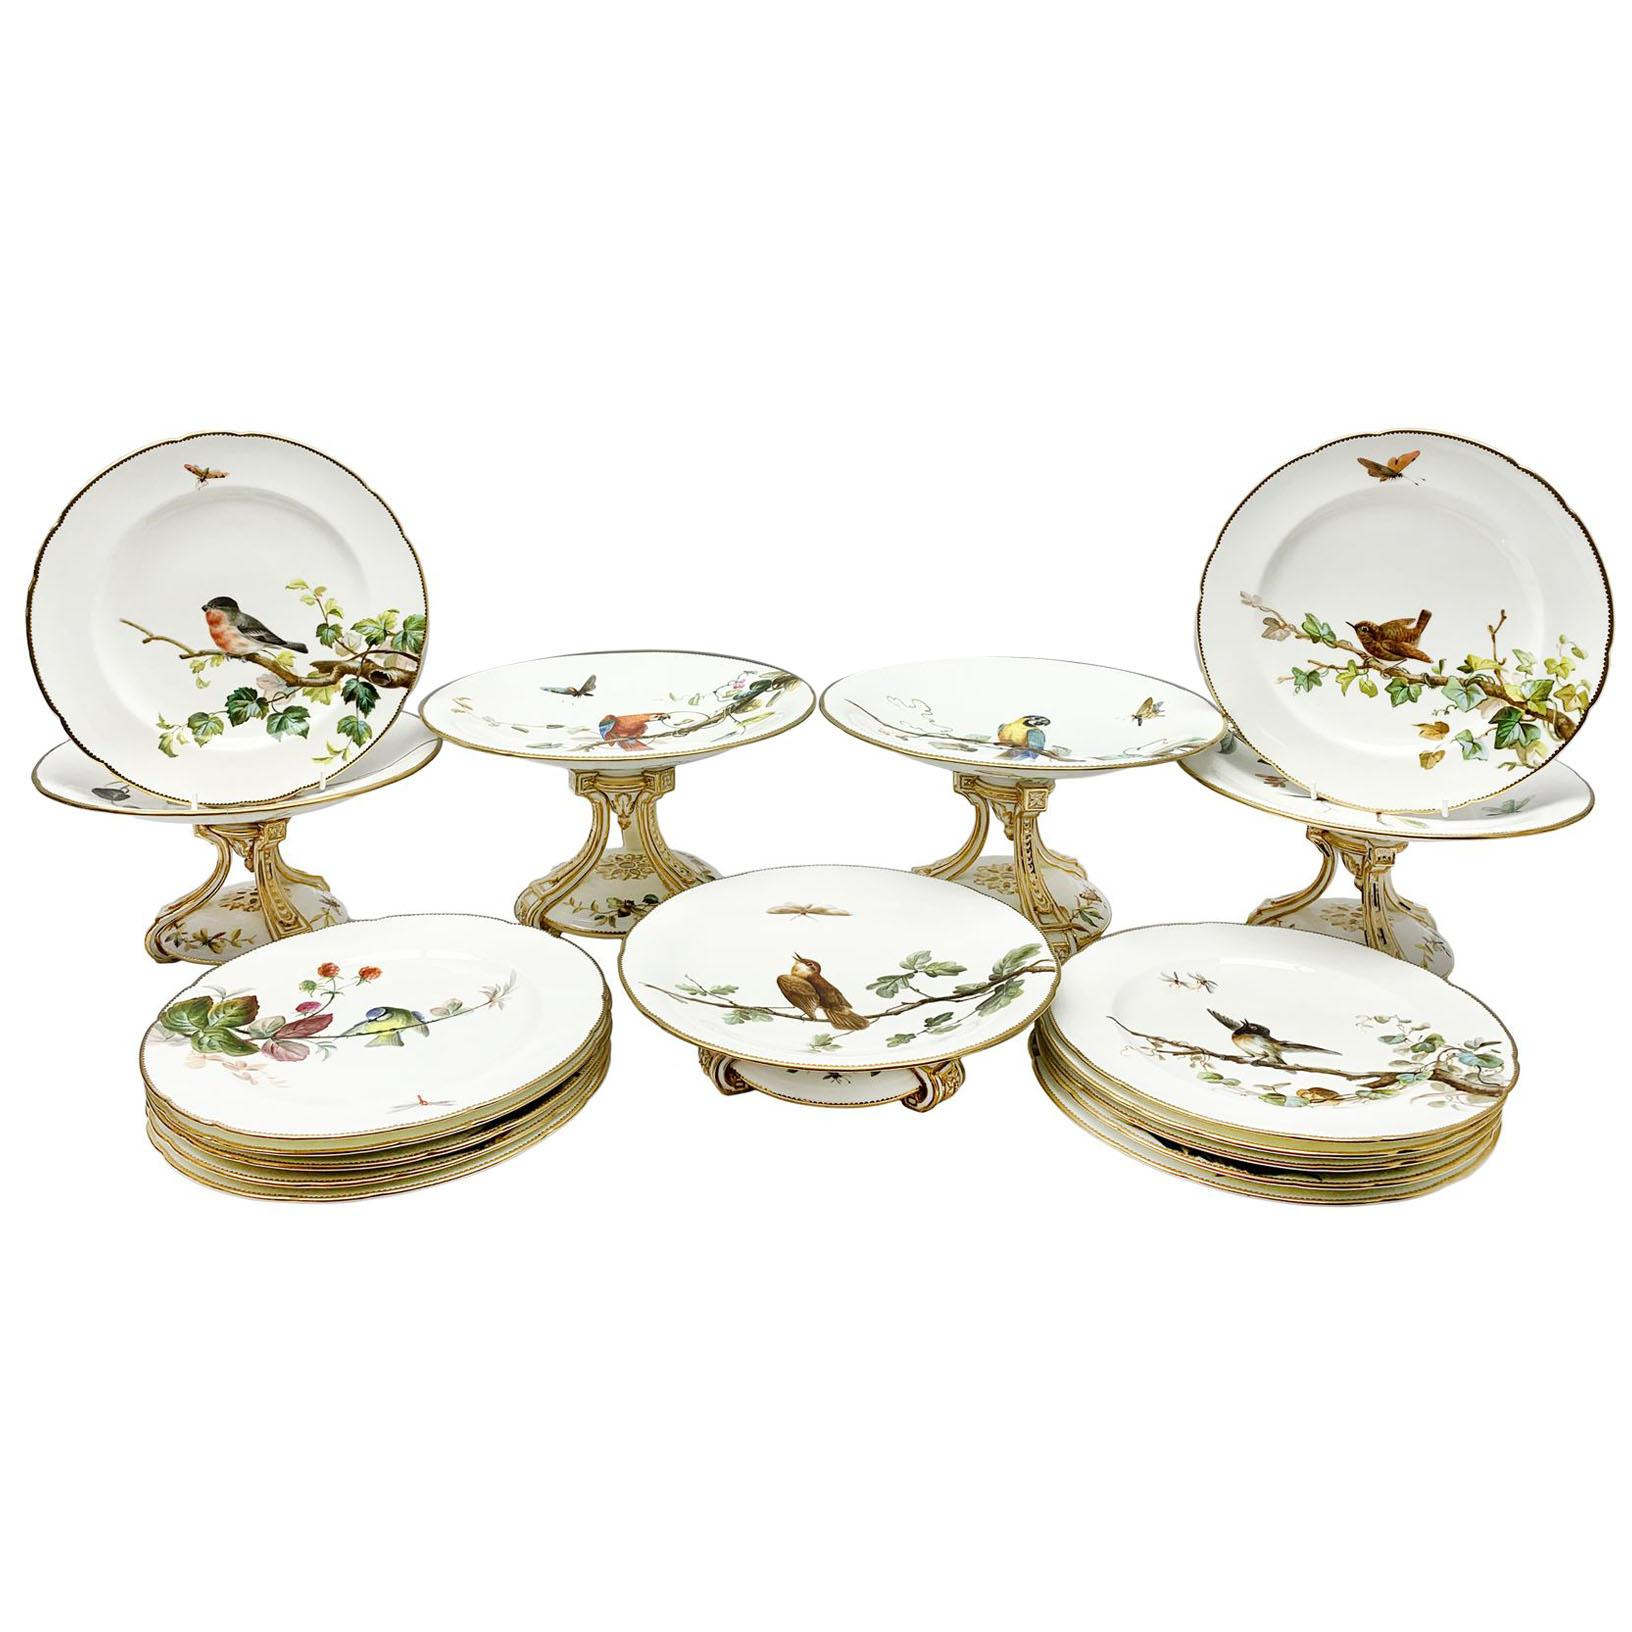 19th Century Minton Bird and Insect Dessert Service 17 Pieces